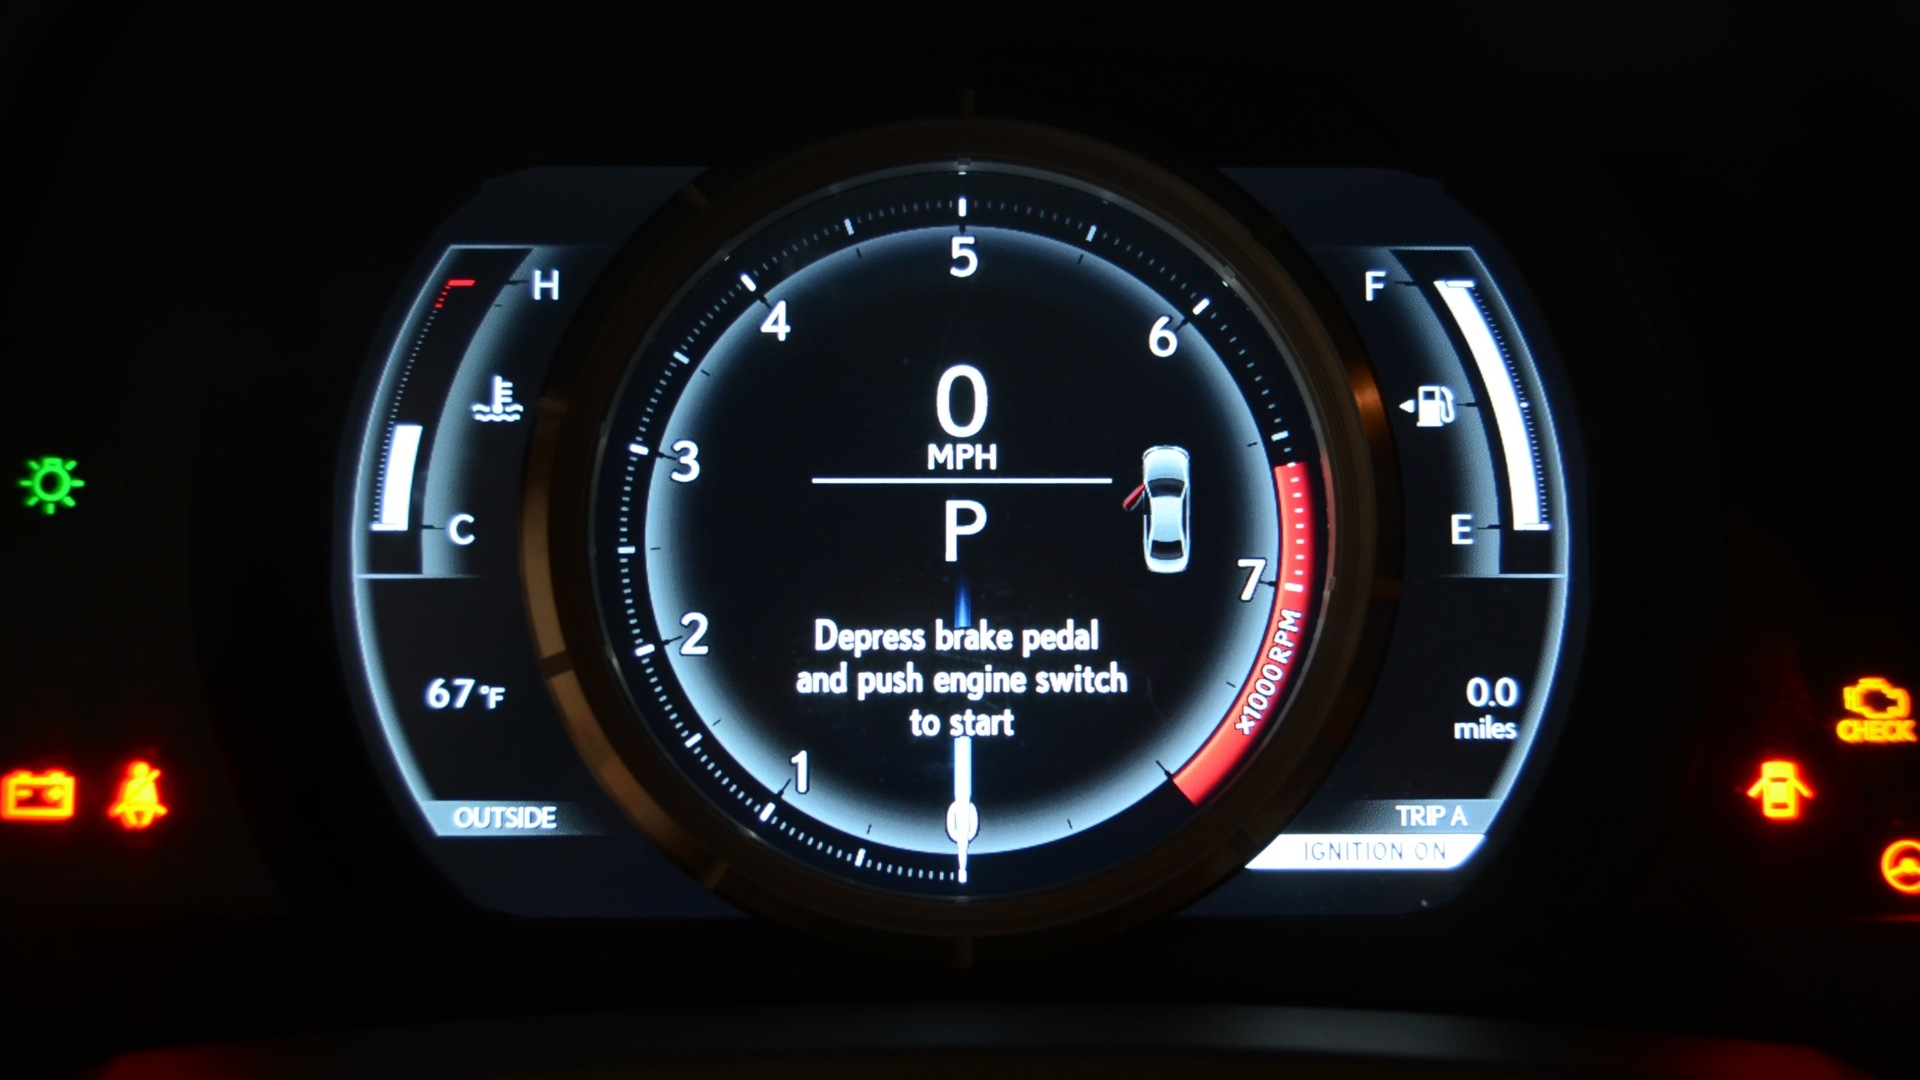 Video: 2014 Lexus IS F-Sport's gorgeous gauges